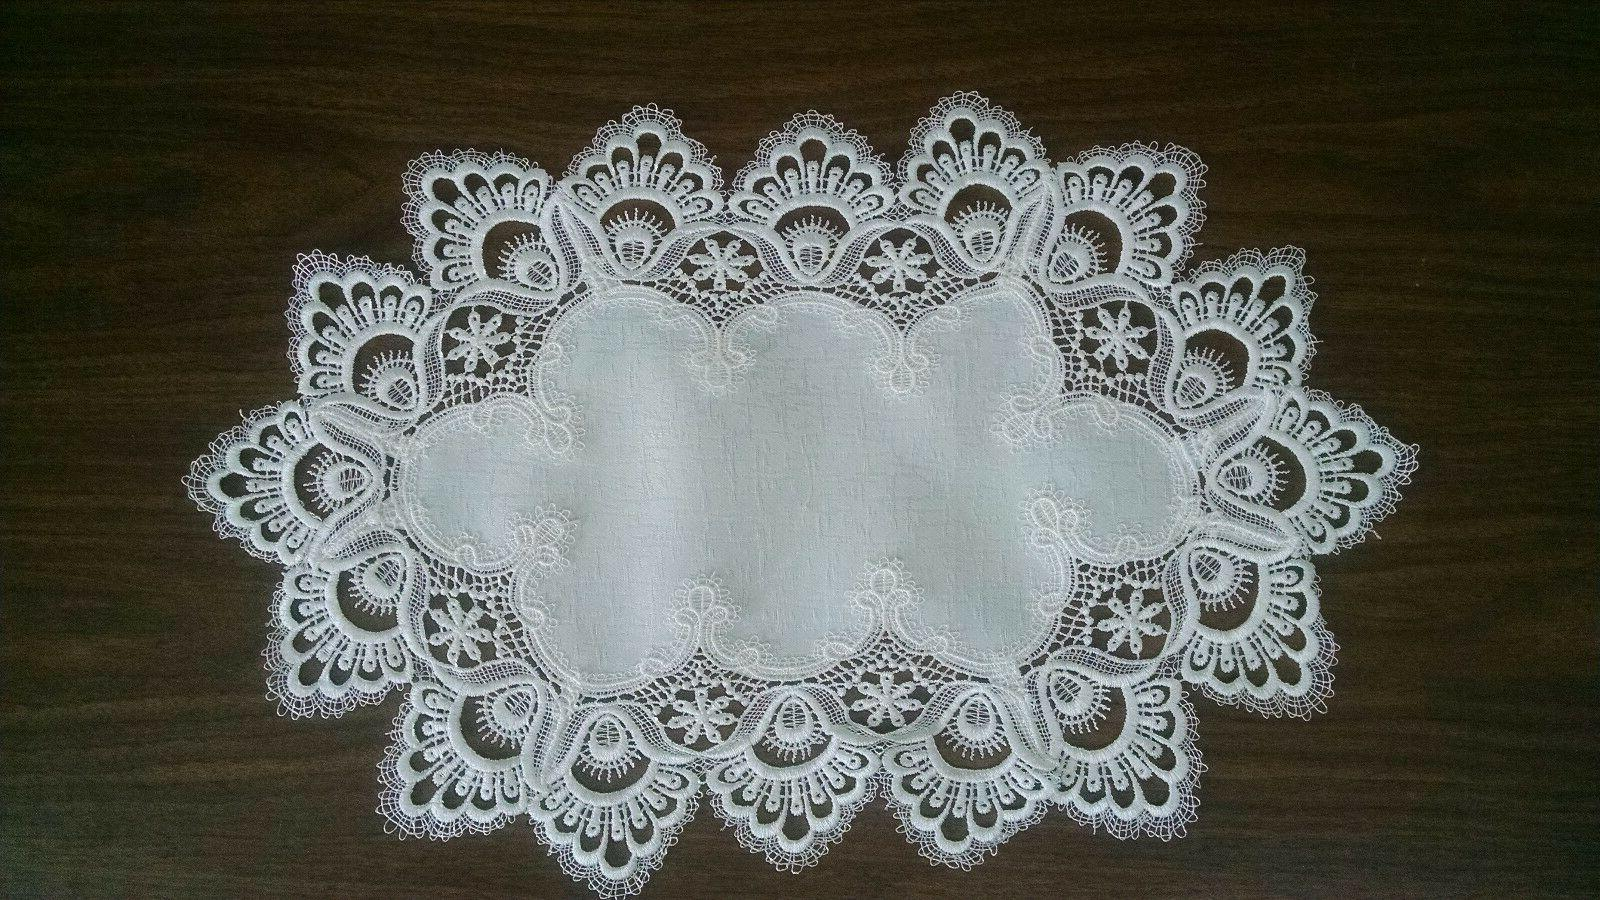 Doily Table or with White European Fabric